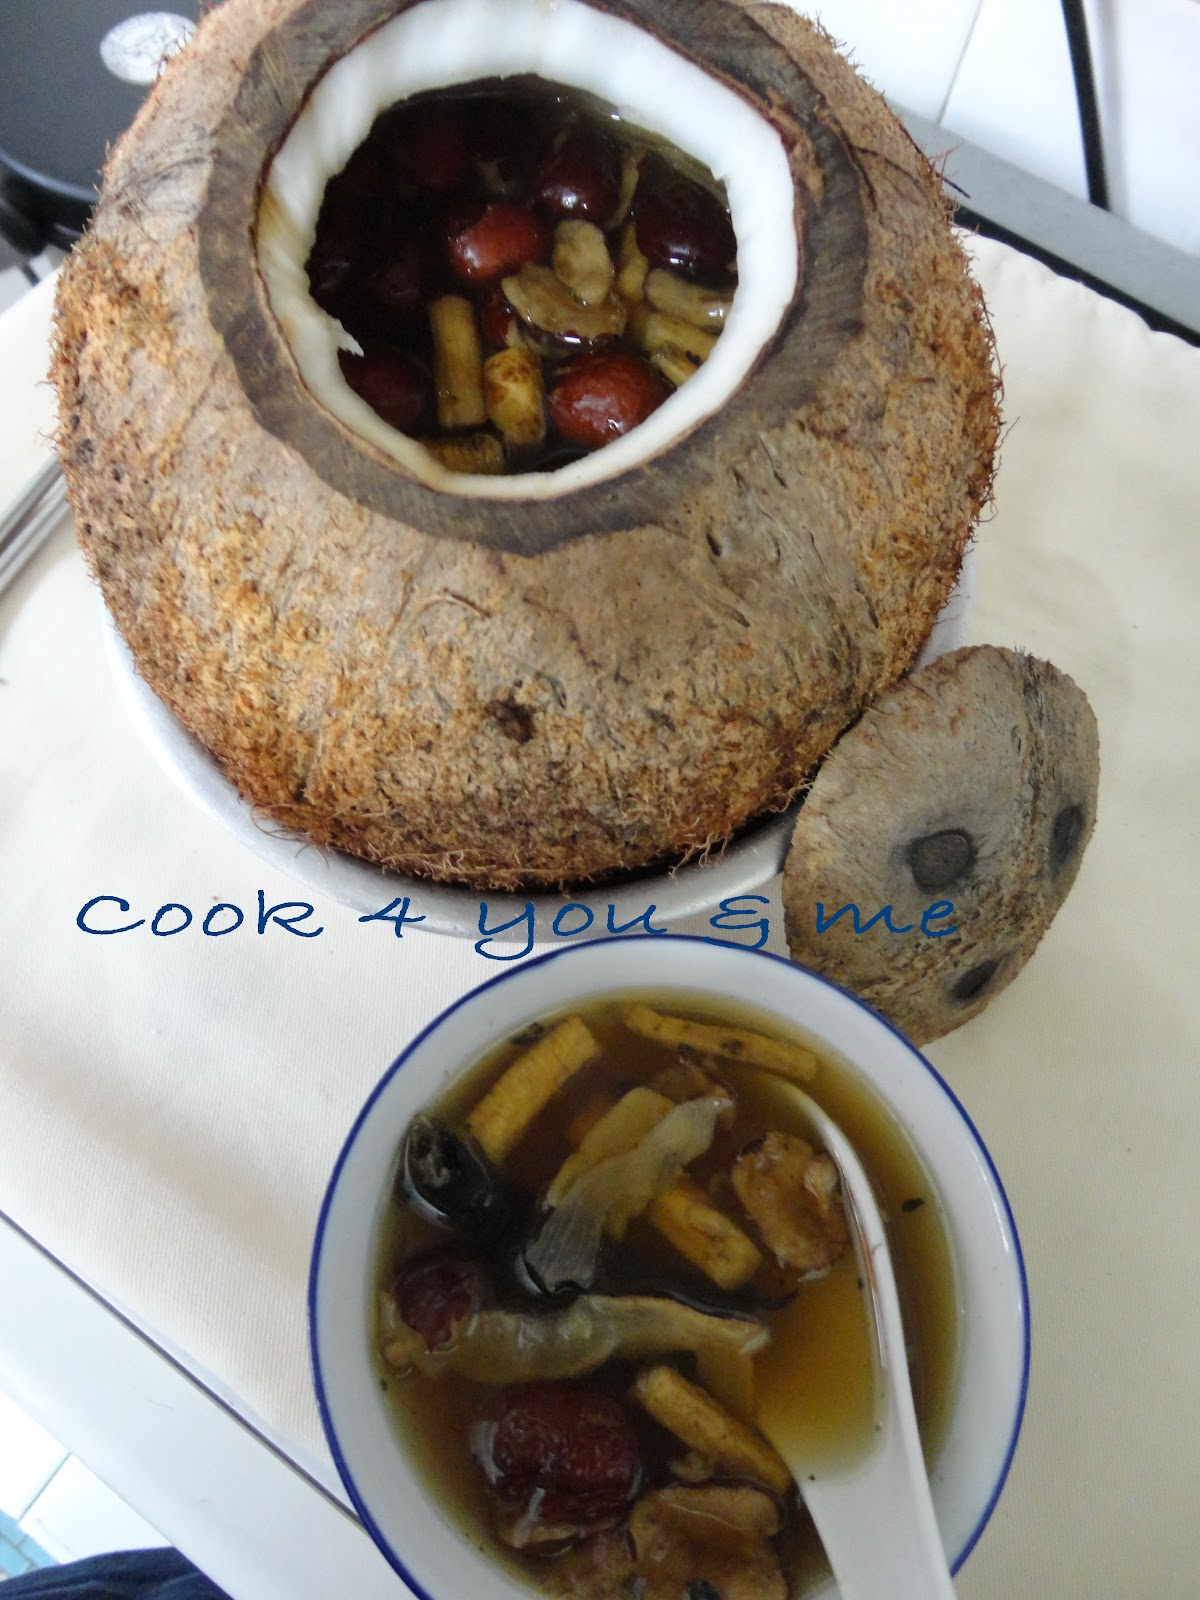 What to cook in a double boiler